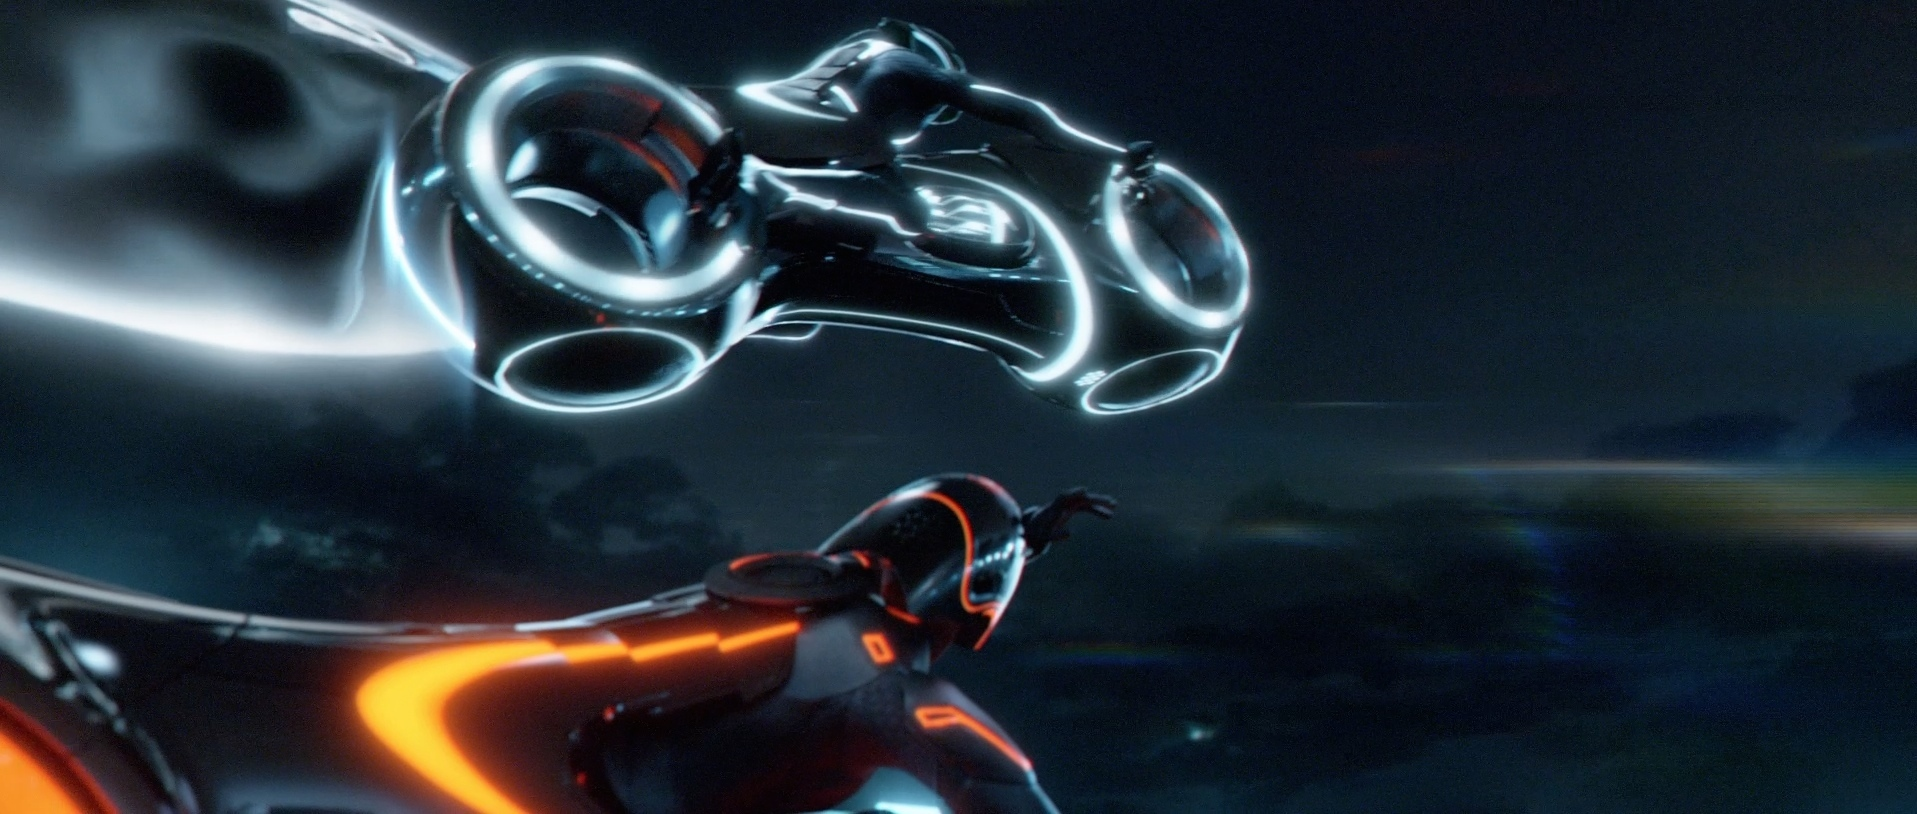 the tron light cycle - photo #24